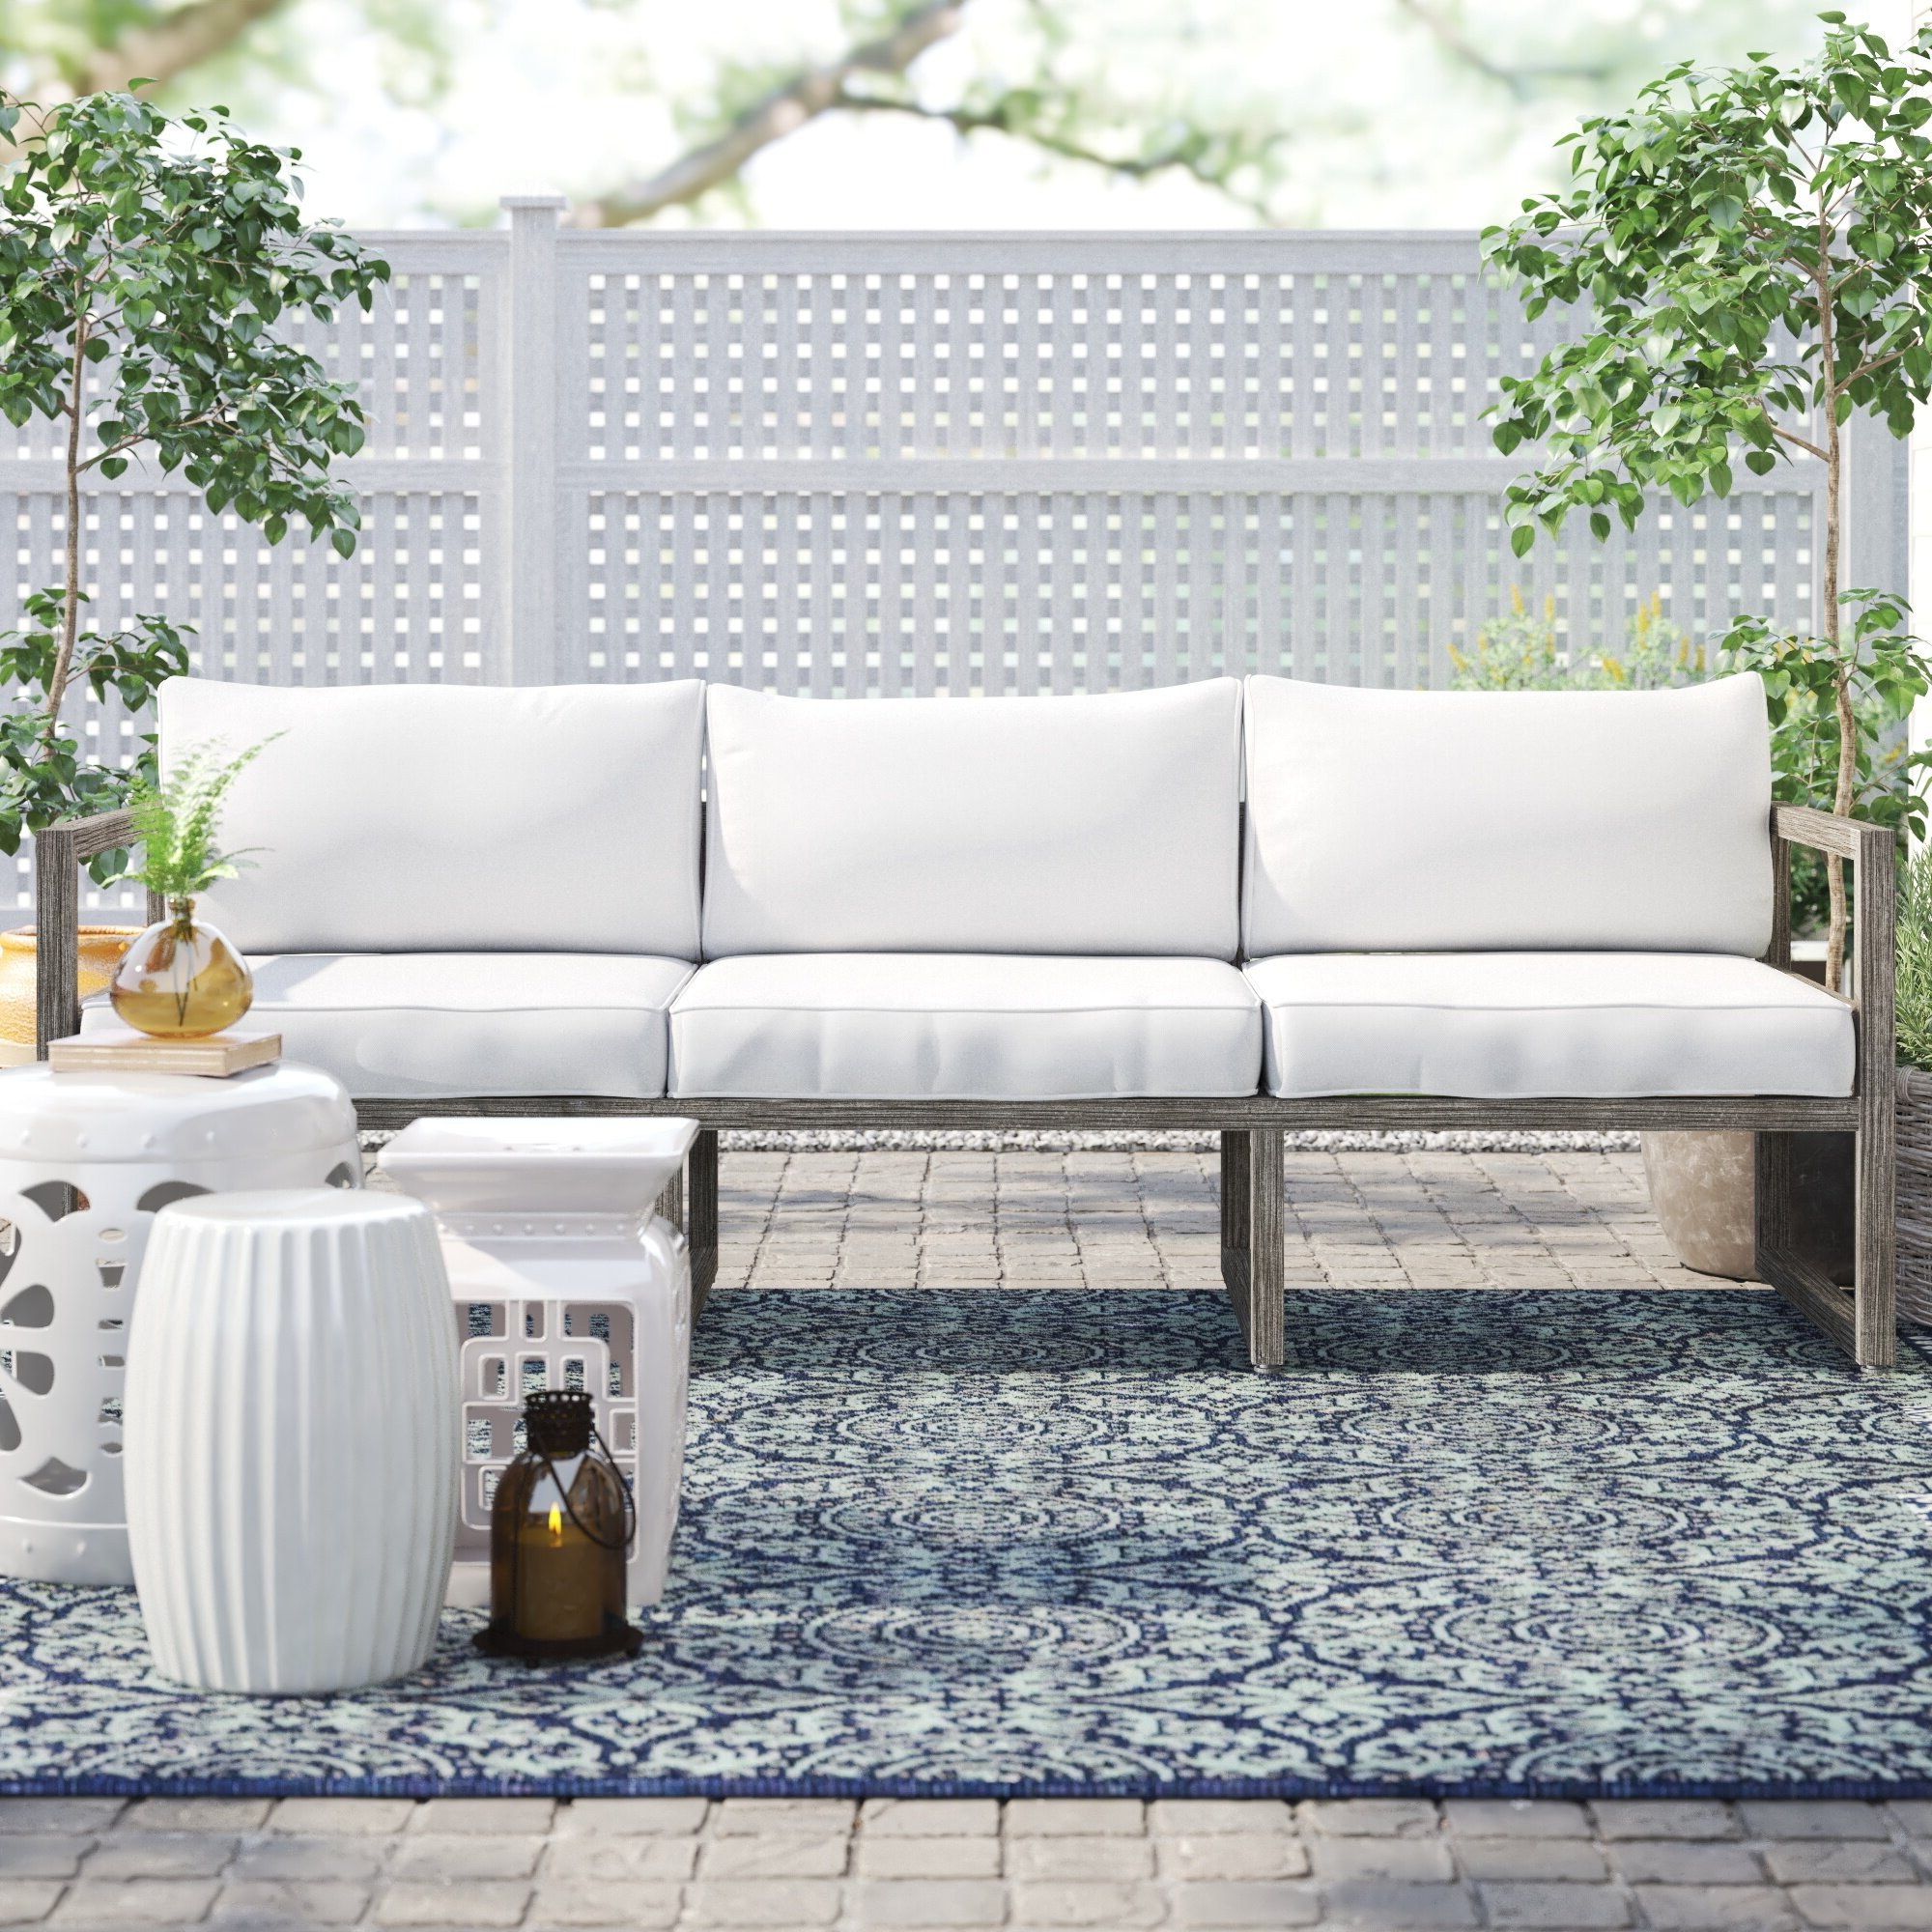 2019 Honeycutt Patio Sofas With Cushions Throughout Monaco Patio Sofa With Cushions (View 22 of 25)